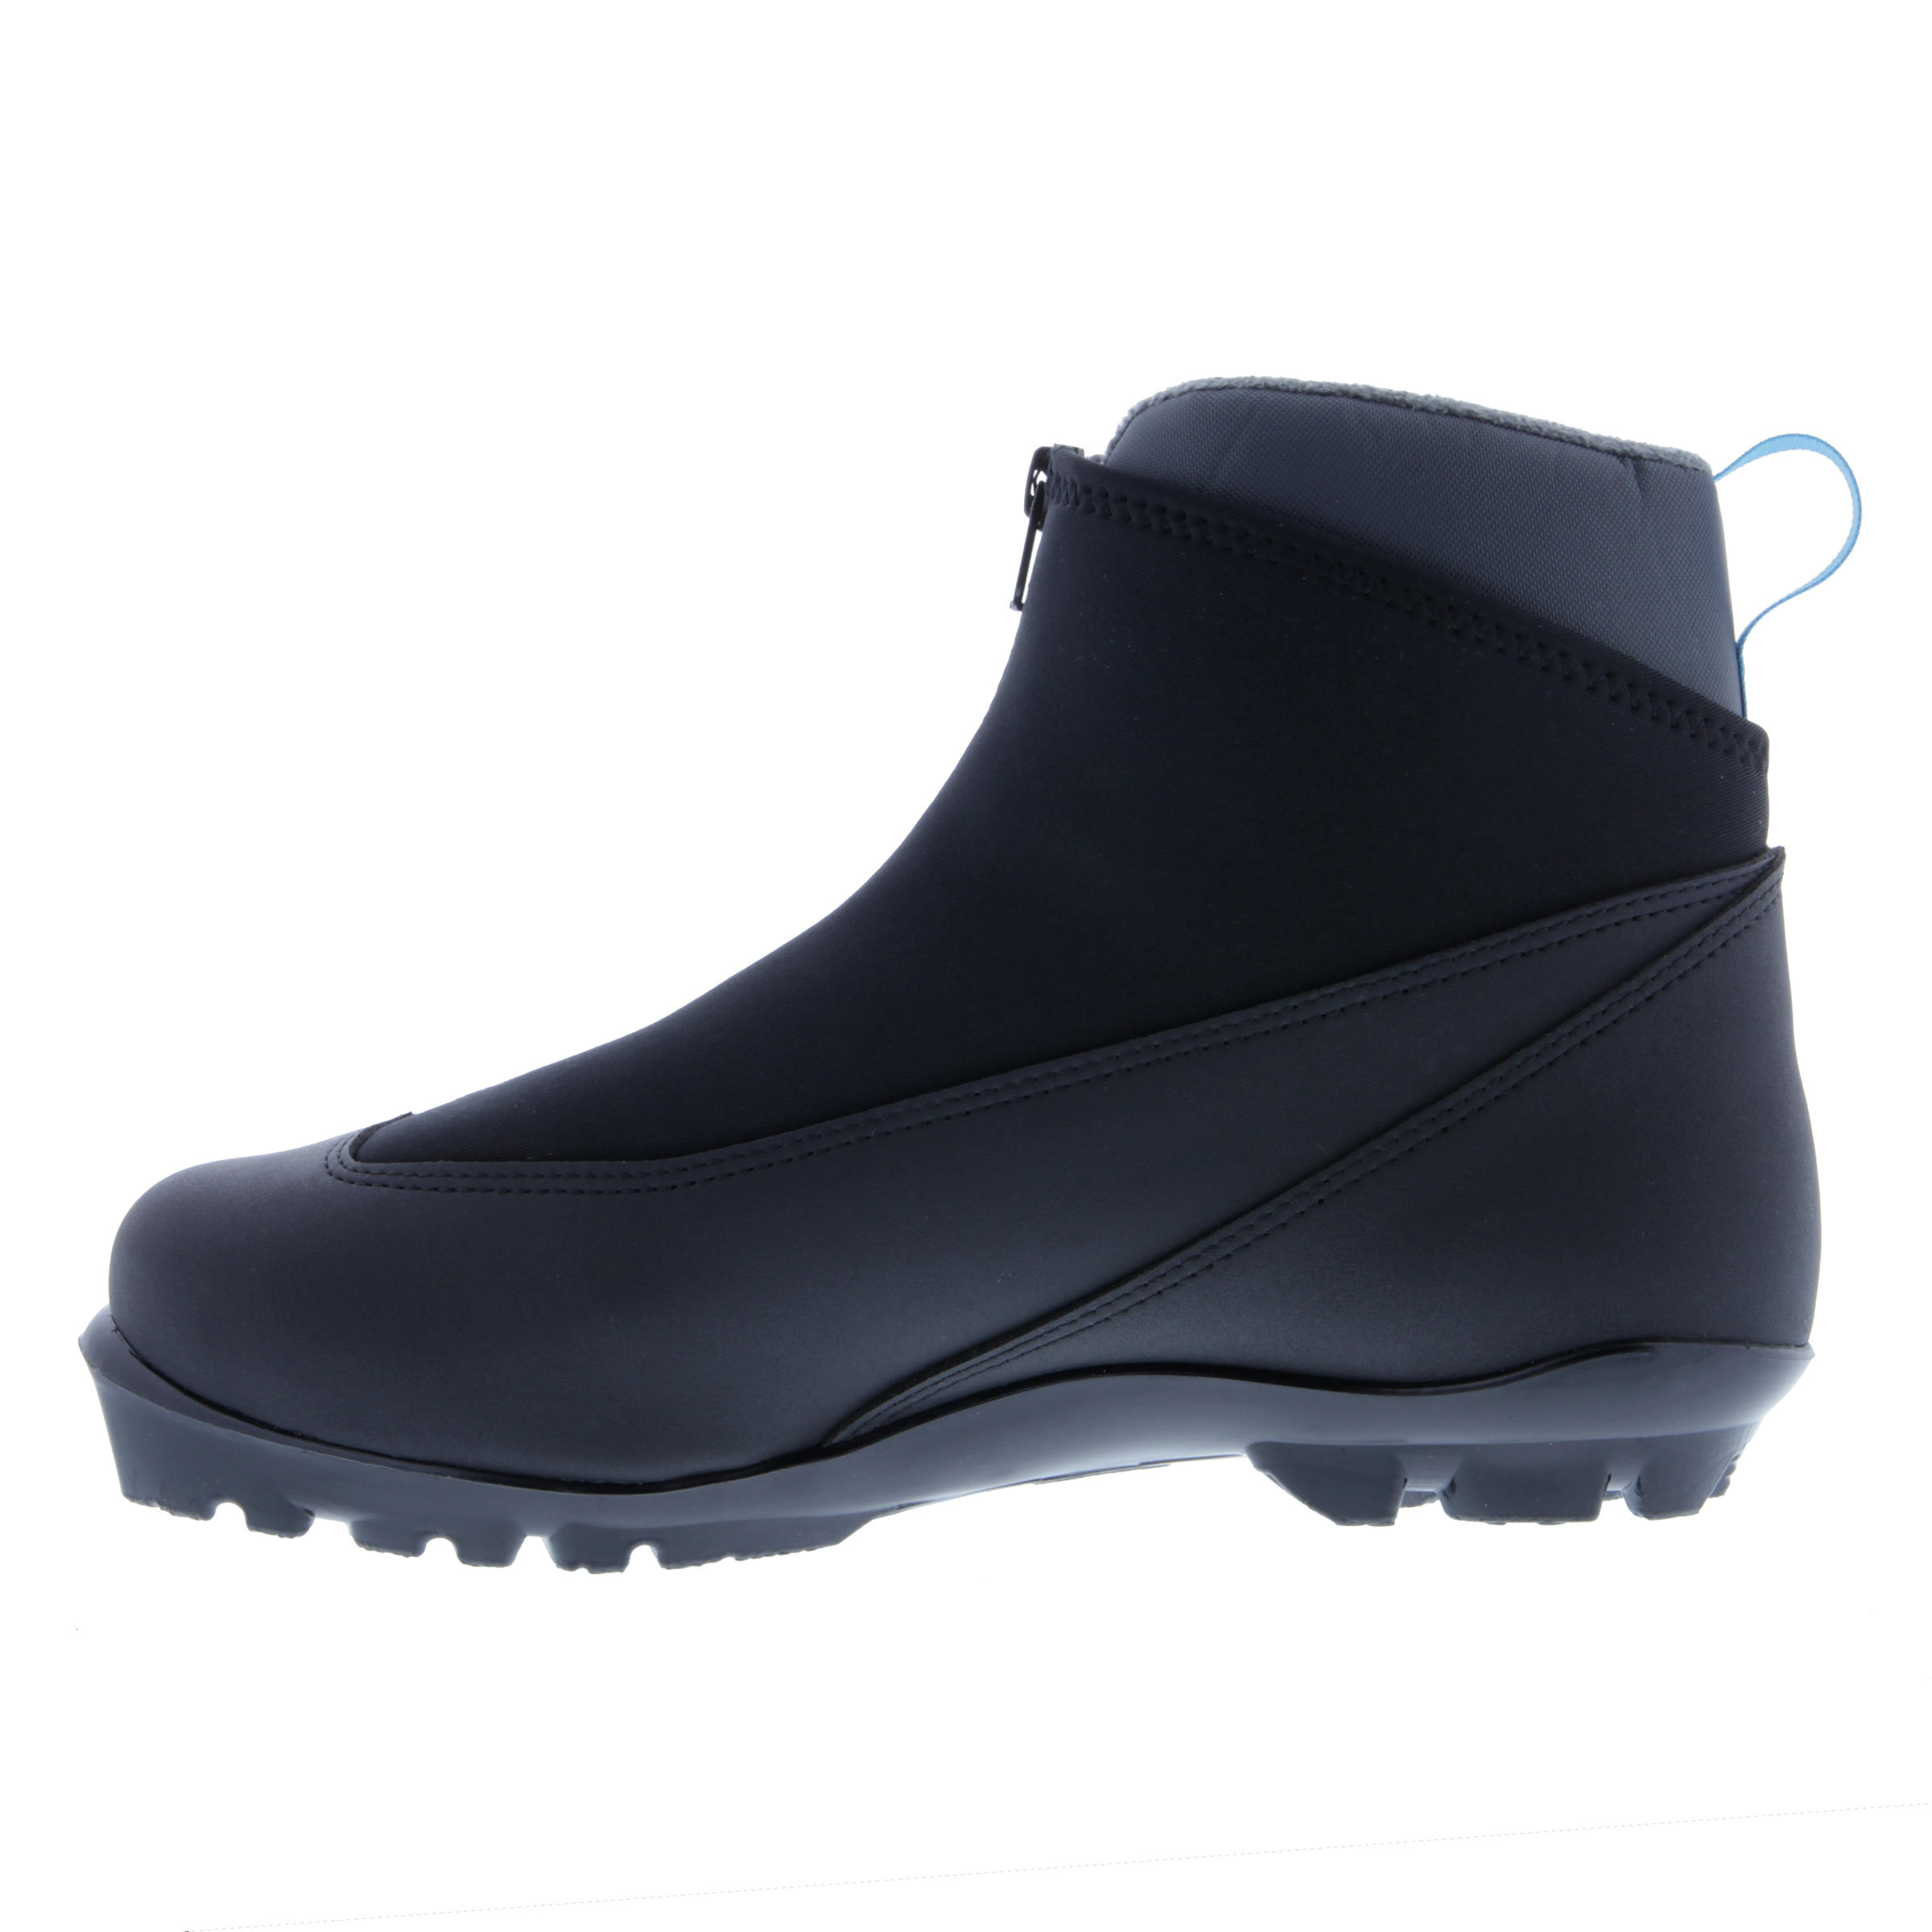 Xc s 150 Classic Junior Cross-Country Skiing Boots